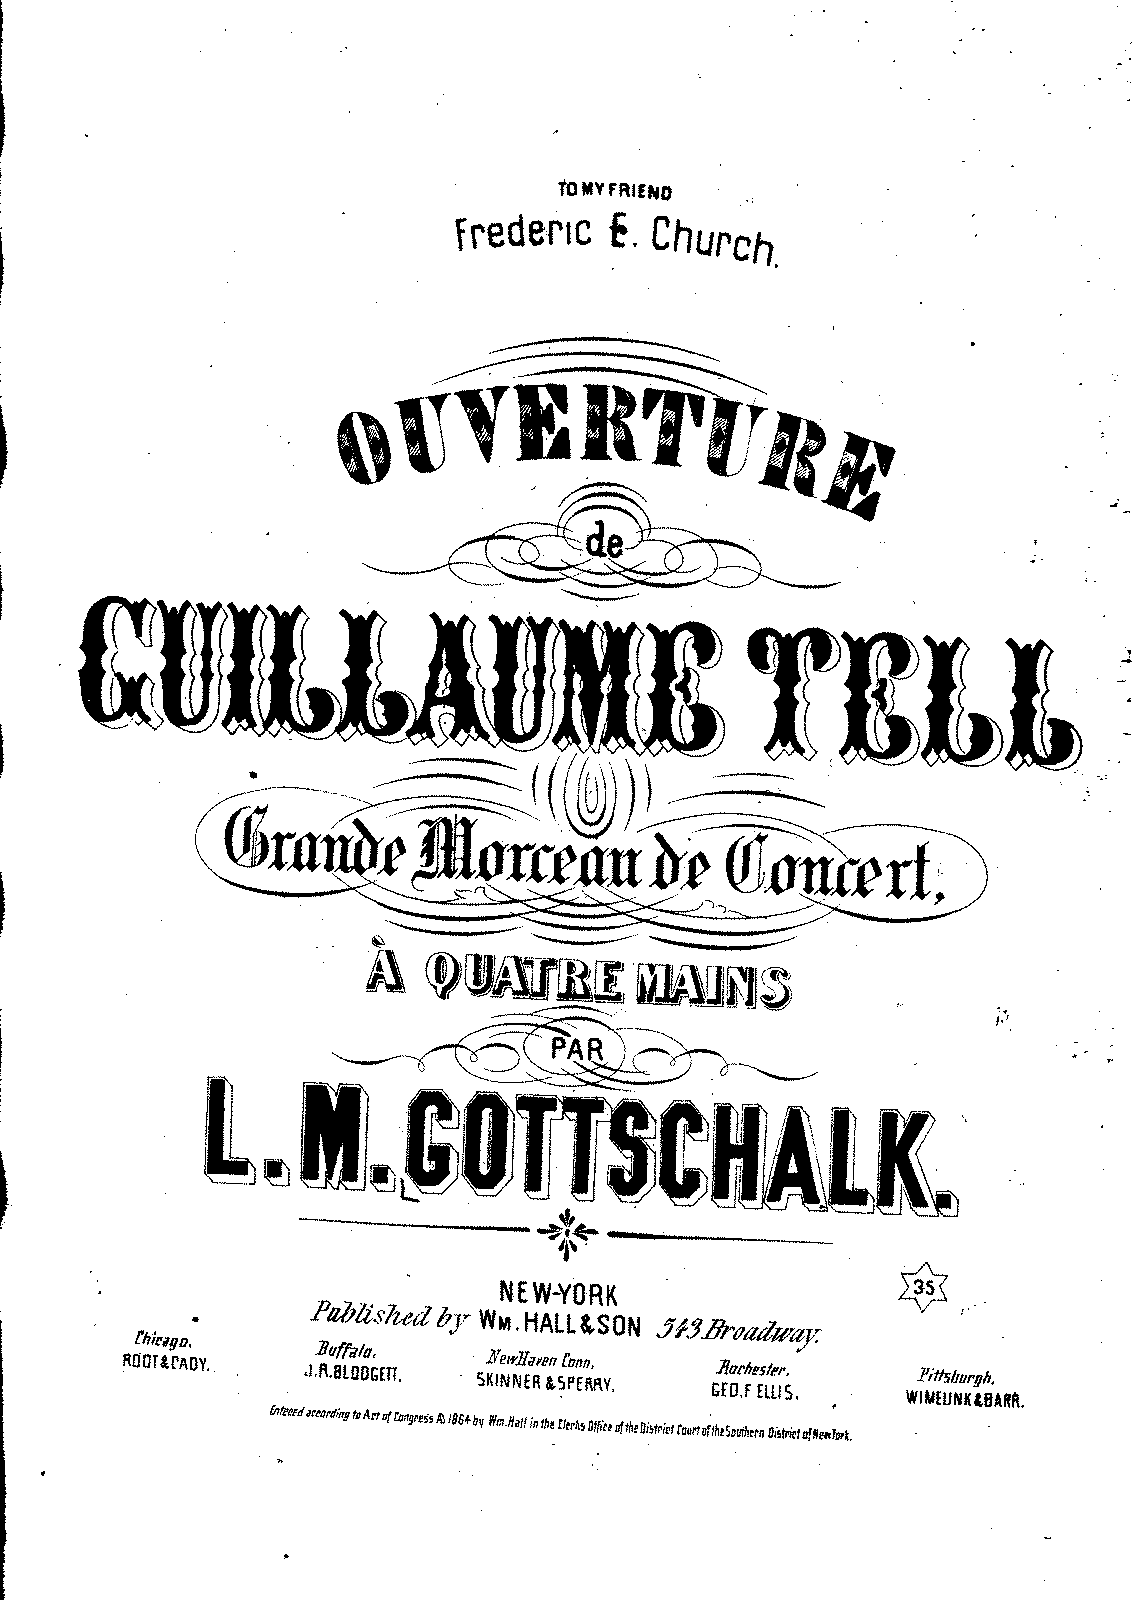 Gottschalk rossini william-tel primo.pdf